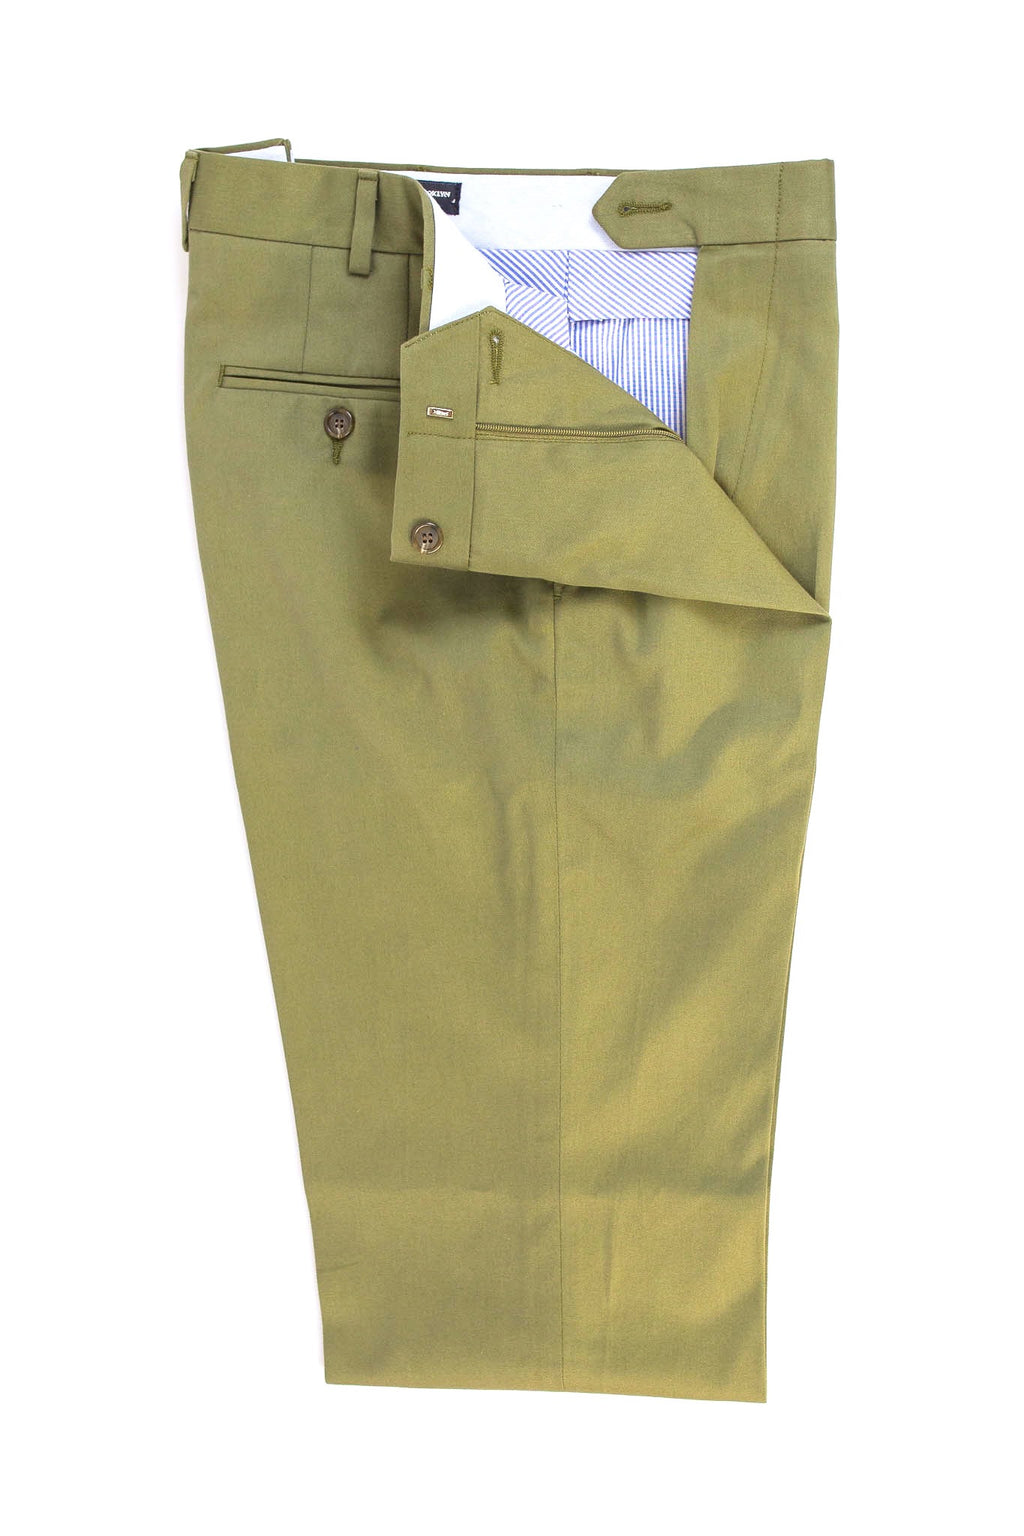 READ WALL Trouser - Fatigue Cotton Drill